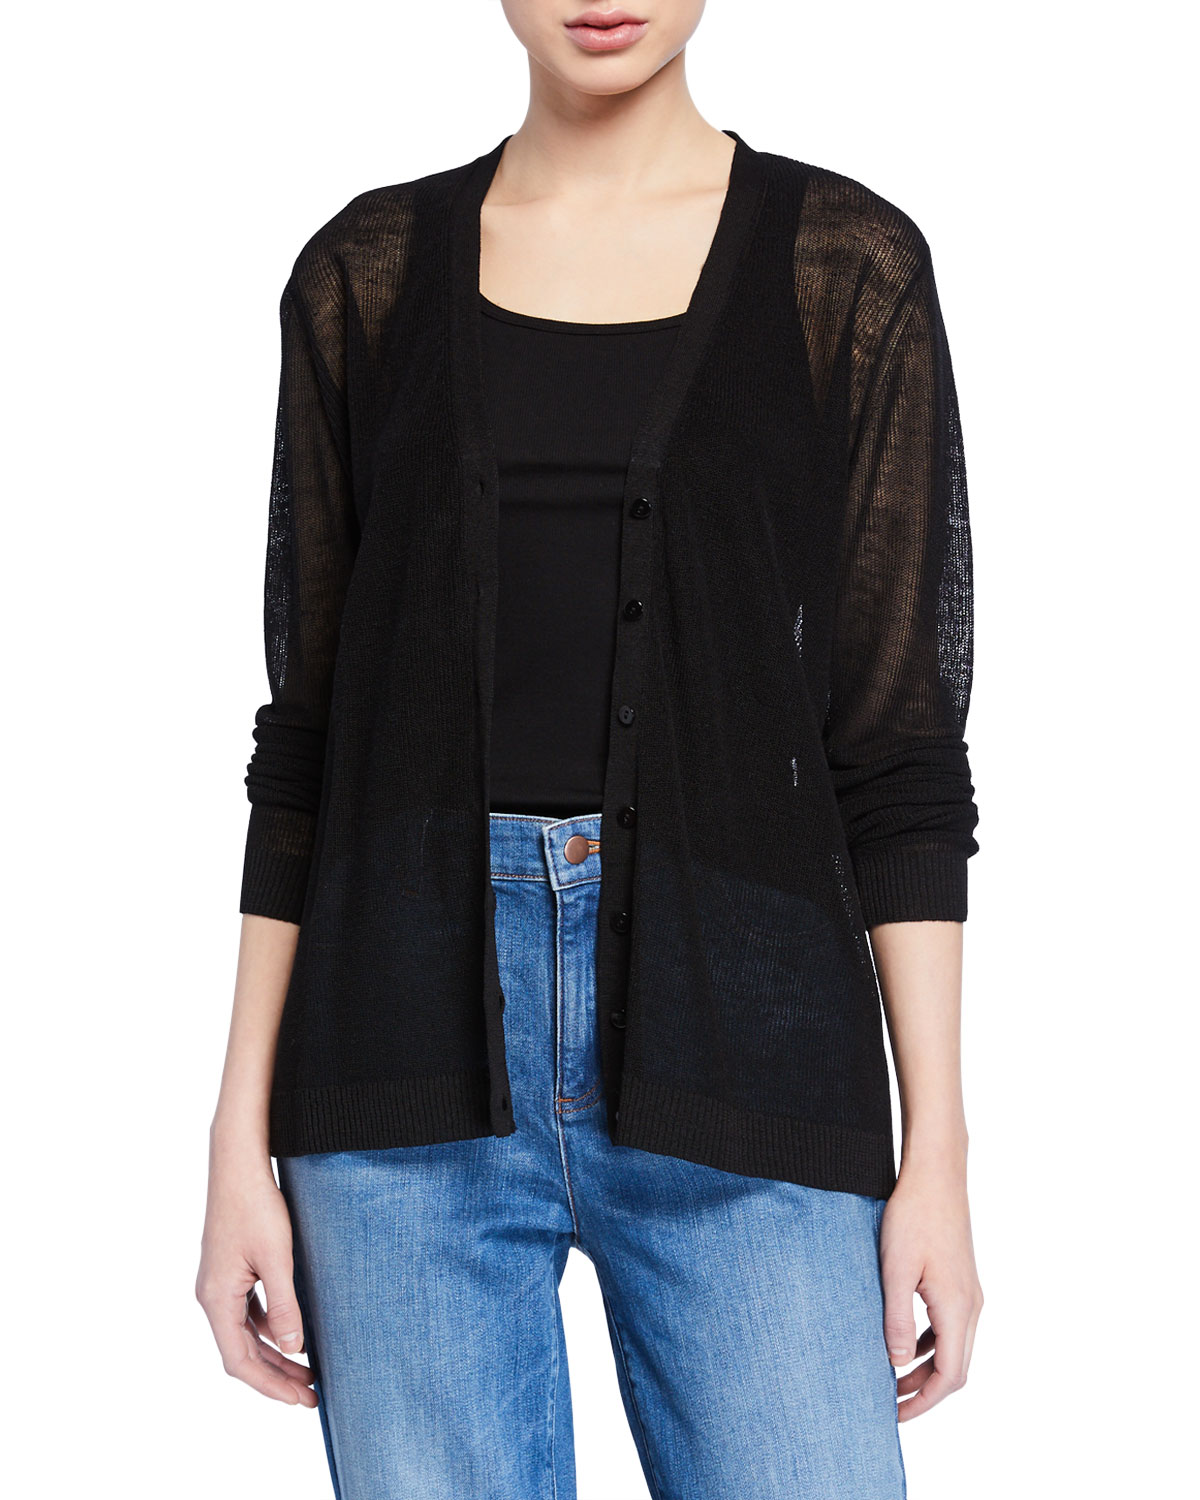 Eileen Fisher Knits PLUS SIZE V-NECK BUTTON-FRONT FINE CREPE KNIT CARDIGAN